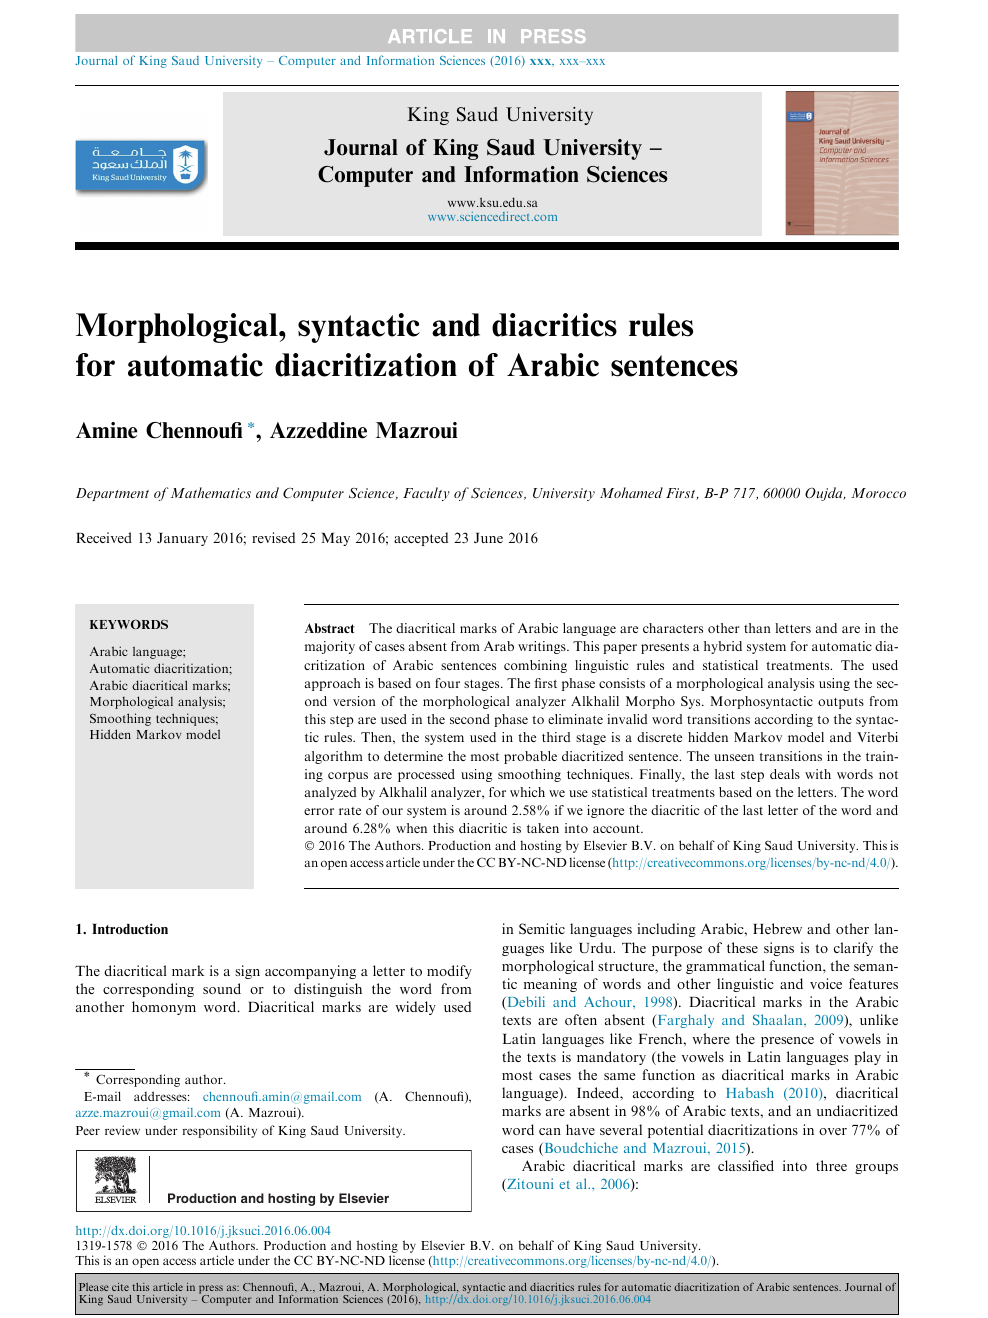 Morphological, syntactic and diacritics rules for automatic